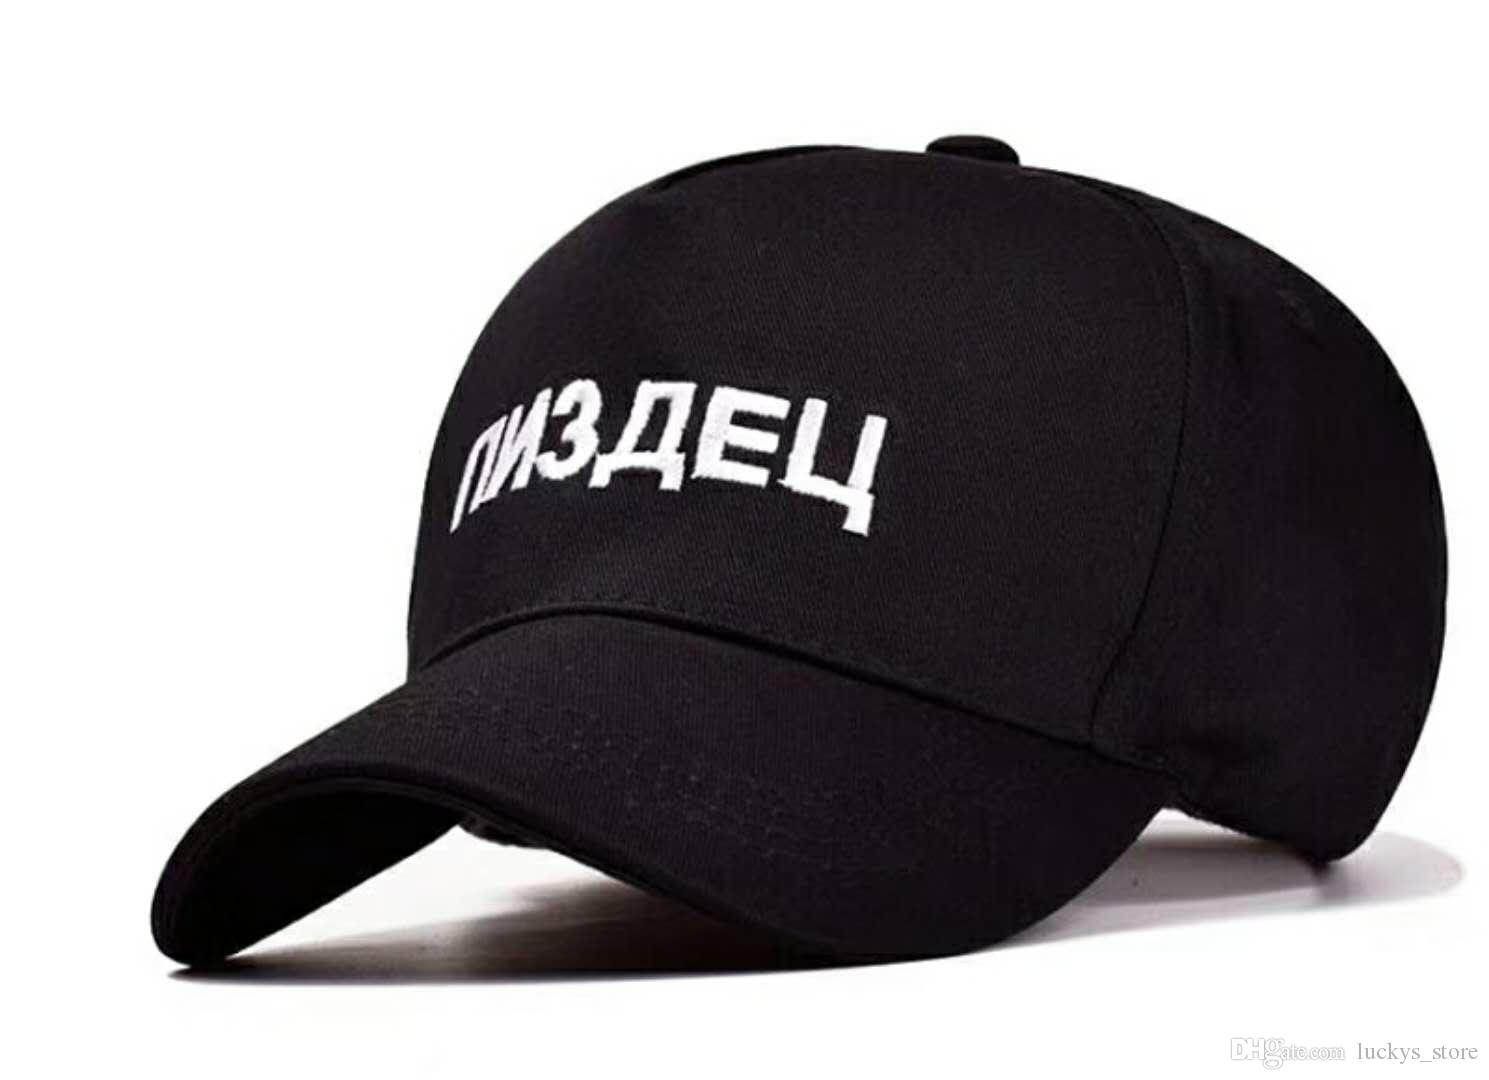 09072aab03b82 Newest Black Baseball Hats Hip Hop Embroidery Hat Fashion Multi Color  Pattern Cap Outdoor Snapback Sports Leisure Caps For Headwear Flat Caps  From ...